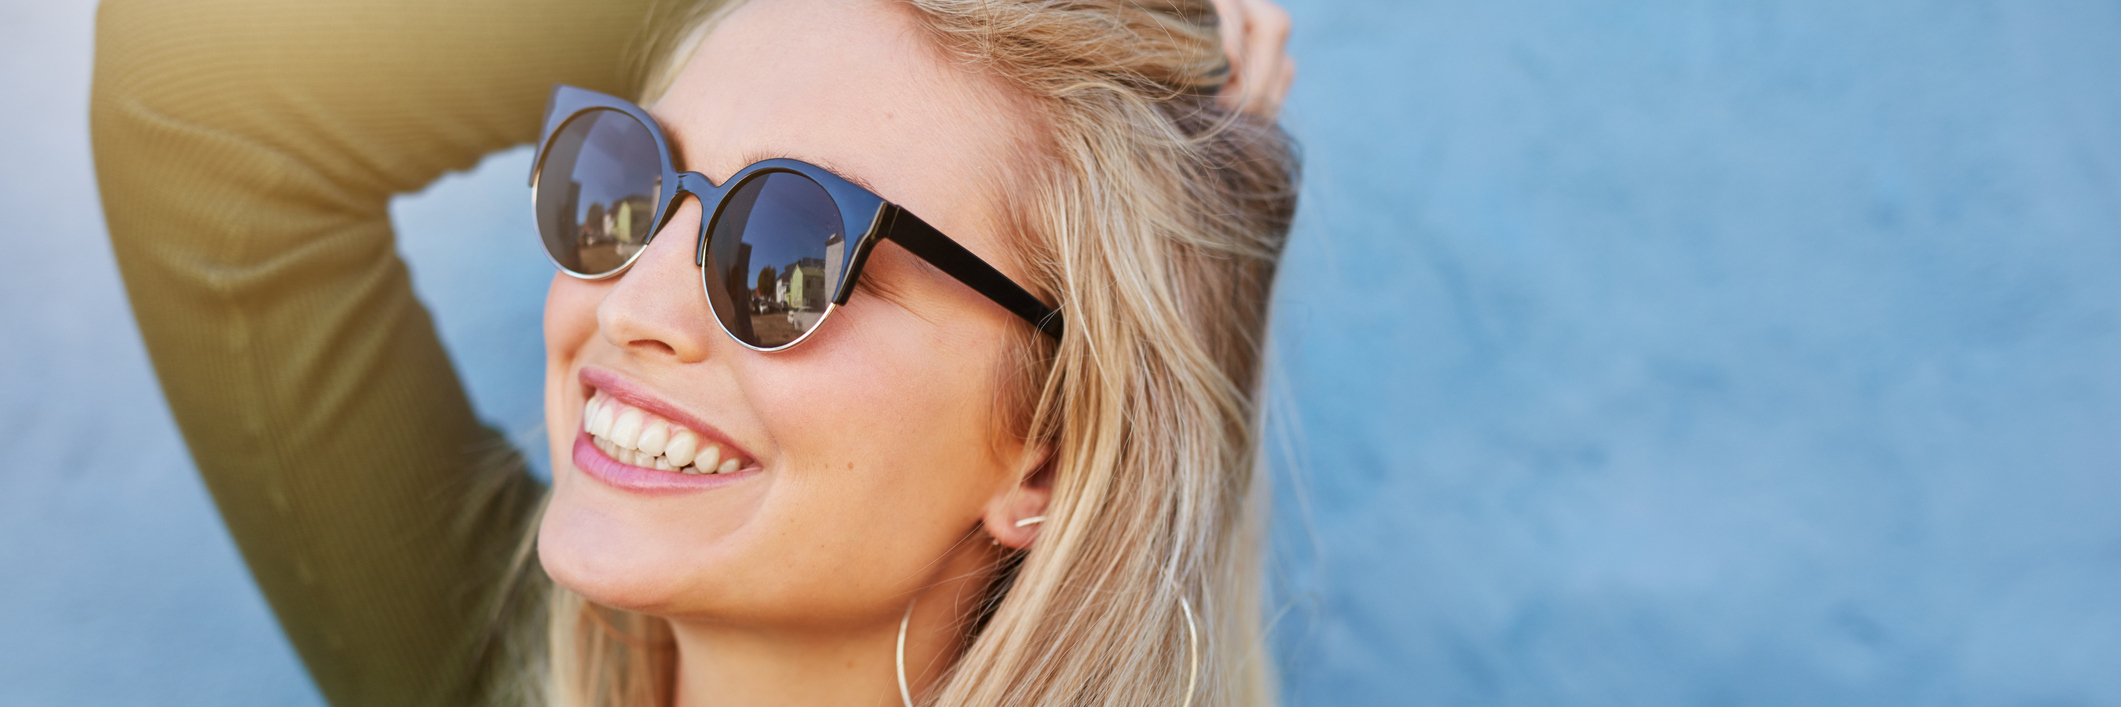 A woman wearing sunglasses, smiling.